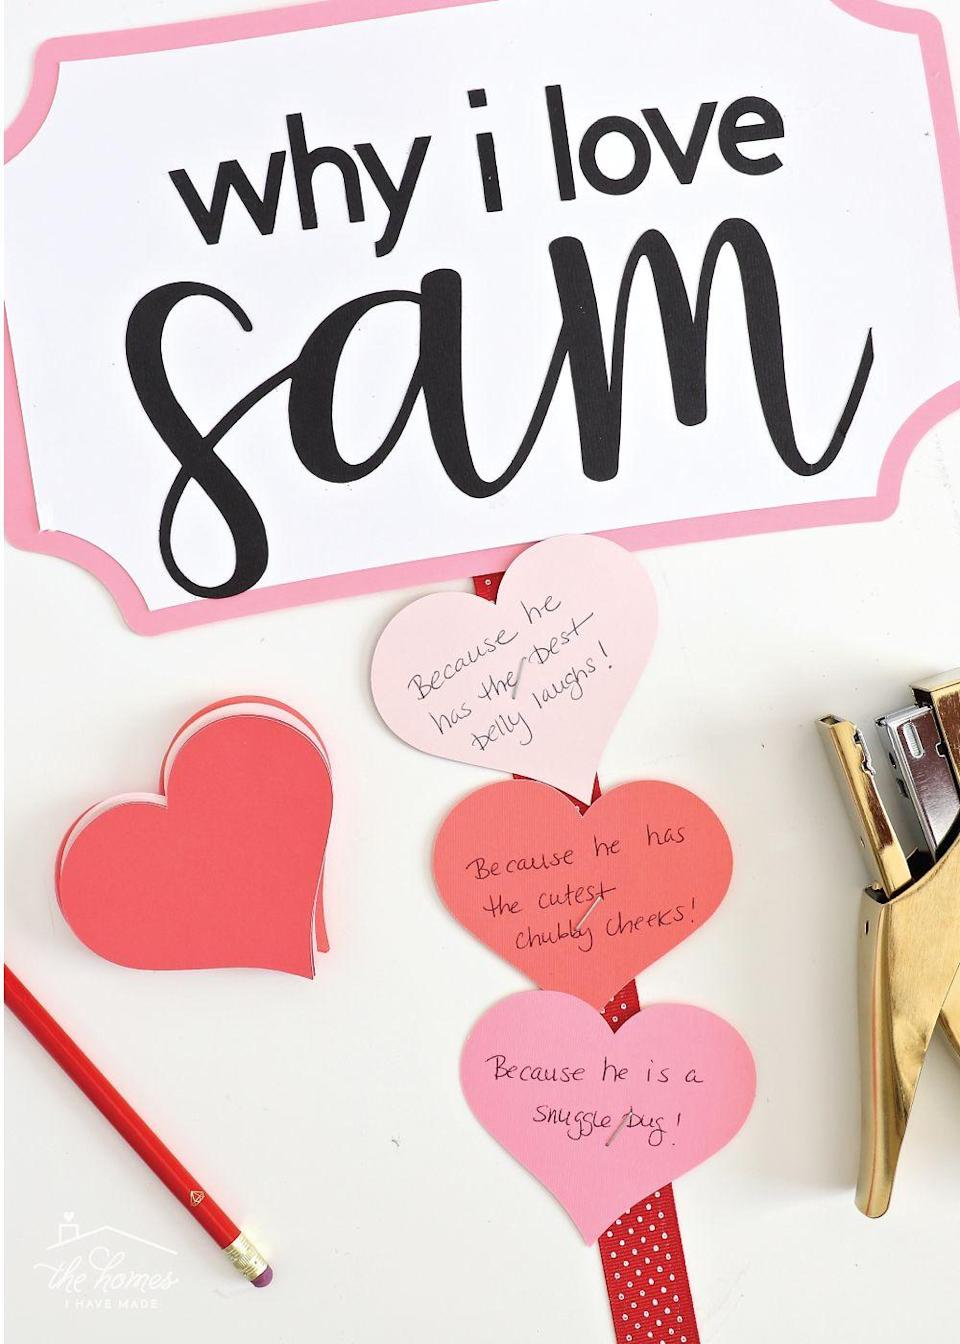 "<p>How do you love your significant other/friend/child? These DIY cards will let you count the ways! The best thing about this project is that it allows you to add new heart-shaped love notes every day—not just on Valentine's Day.</p><p><strong>See more at <a href=""https://thehomesihavemade.com/2019/01/daily-valentine-love-notes/"" rel=""nofollow noopener"" target=""_blank"" data-ylk=""slk:The Homes I Have Made"" class=""link rapid-noclick-resp"">The Homes I Have Made</a>. </strong></p><p><a class=""link rapid-noclick-resp"" href=""https://go.redirectingat.com?id=74968X1596630&url=https%3A%2F%2Fwww.walmart.com%2Fip%2FPost-it-Heart-Shape-Notes-3-x-3-Assorted-Colors%2F17792846&sref=https%3A%2F%2Fwww.thepioneerwoman.com%2Fhome-lifestyle%2Fcrafts-diy%2Fg35084525%2Fdiy-valentines-day-cards%2F"" rel=""nofollow noopener"" target=""_blank"" data-ylk=""slk:SHOP HEART-SHAPED POST-ITS"">SHOP HEART-SHAPED POST-ITS</a></p>"